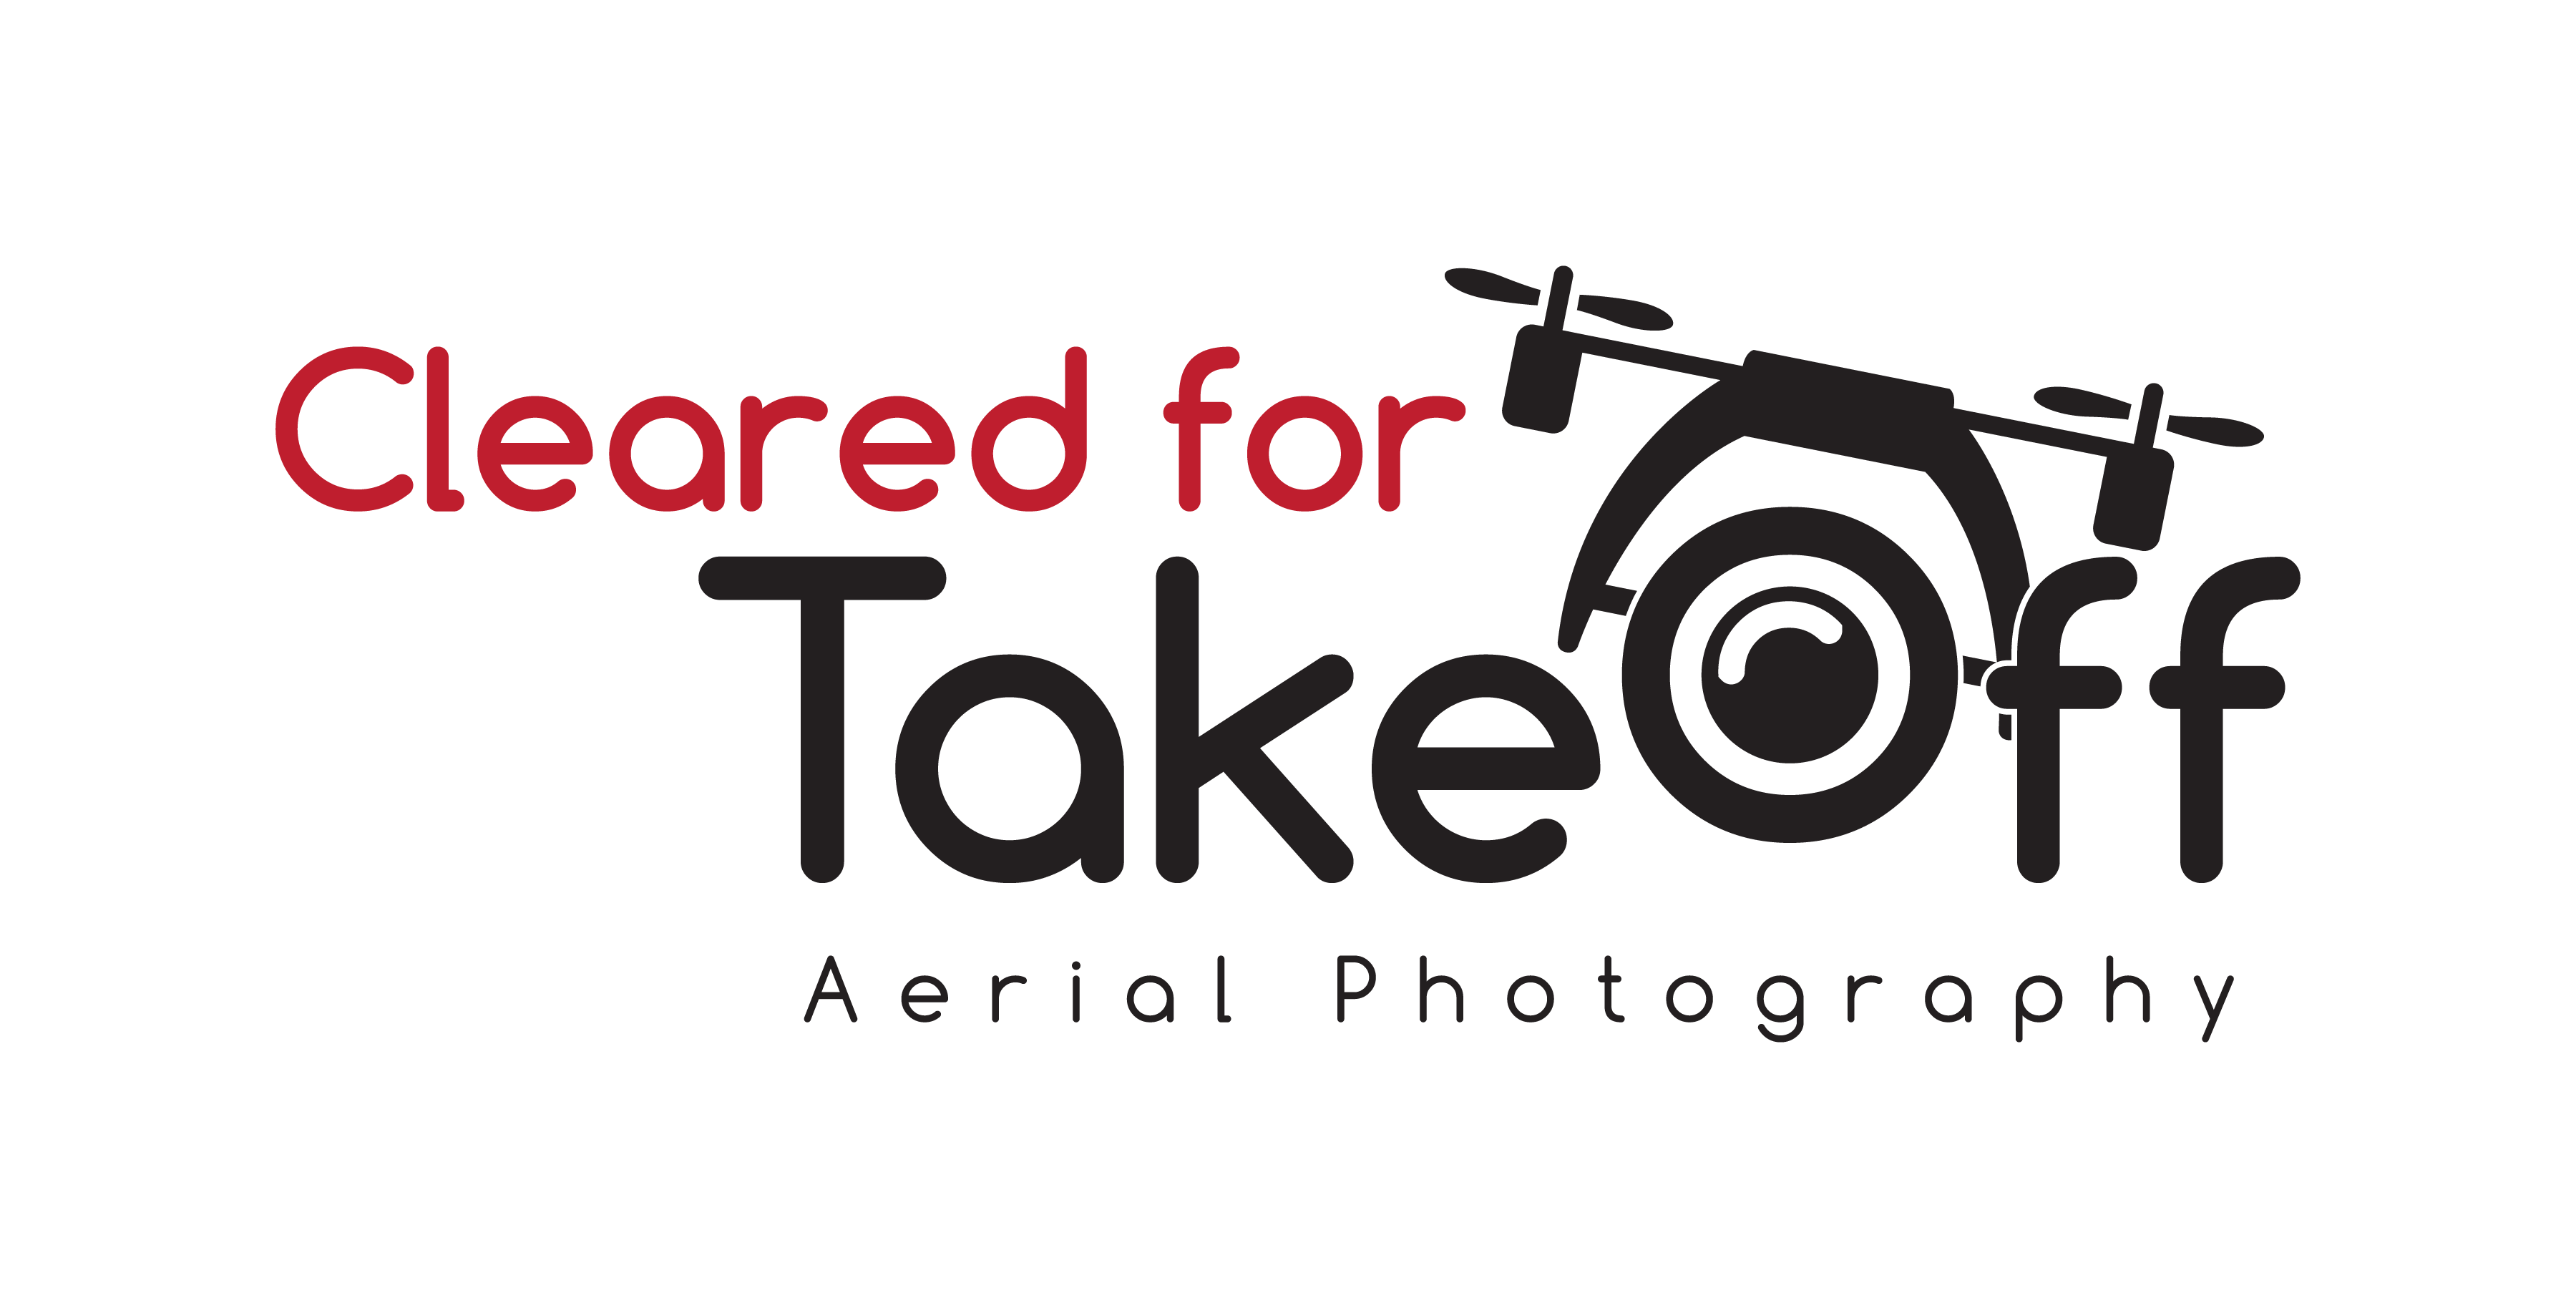 Cleared For Takeoff Aerial Photography Logo